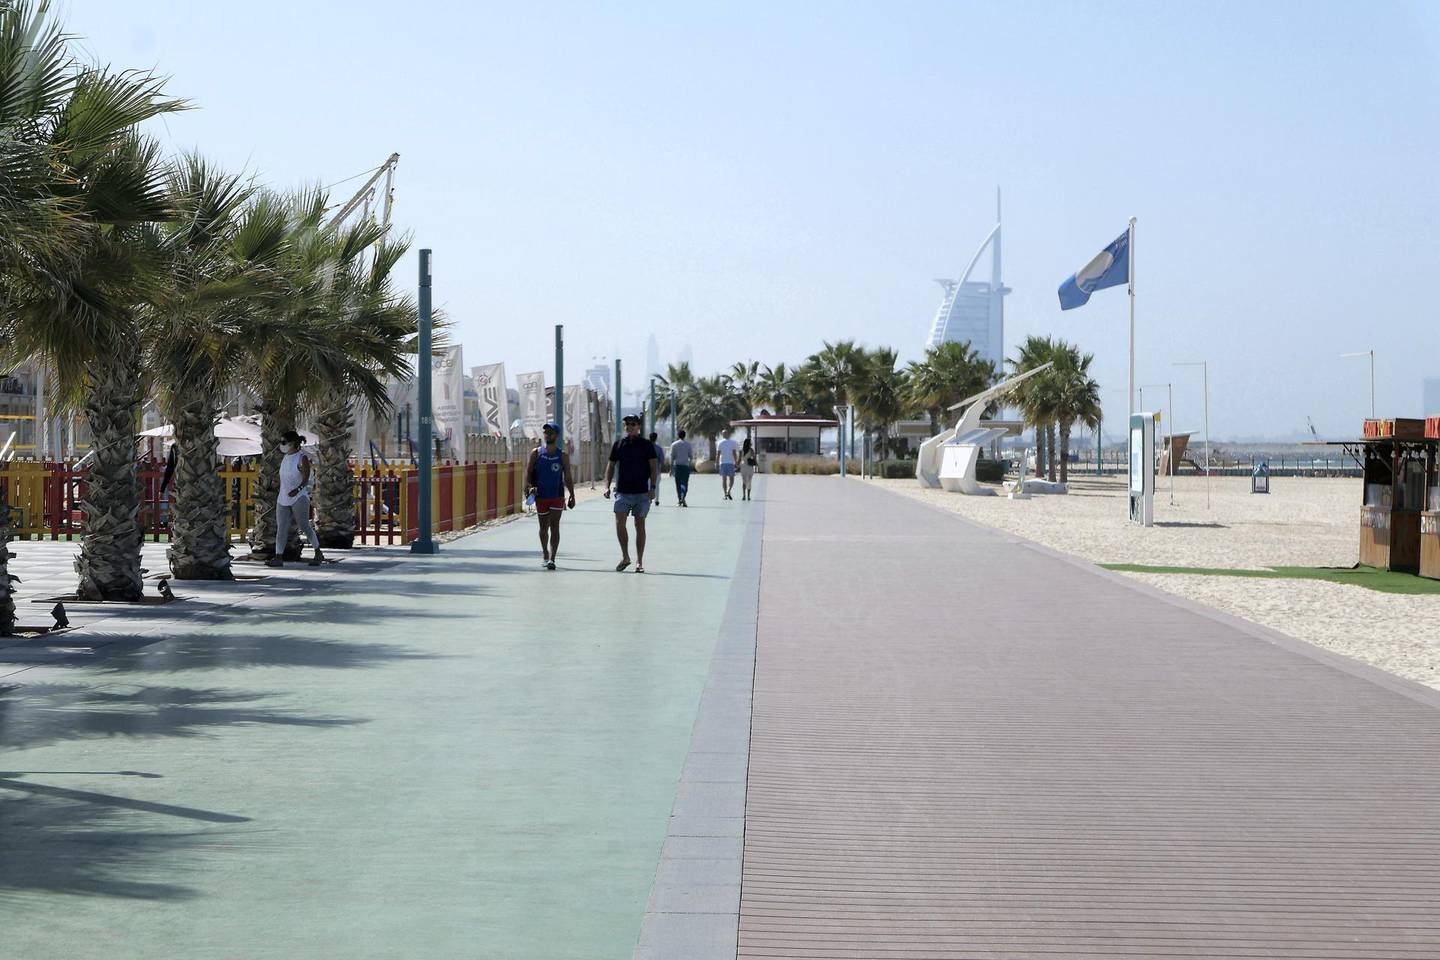 DUBAI, UNITED ARAB EMIRATES , Feb 08 – Jogging track at the Kite beach in Umm Suqeim area in Dubai. (Pawan Singh / The National) For News/Stock/Online/Instagram. Story by Georgia